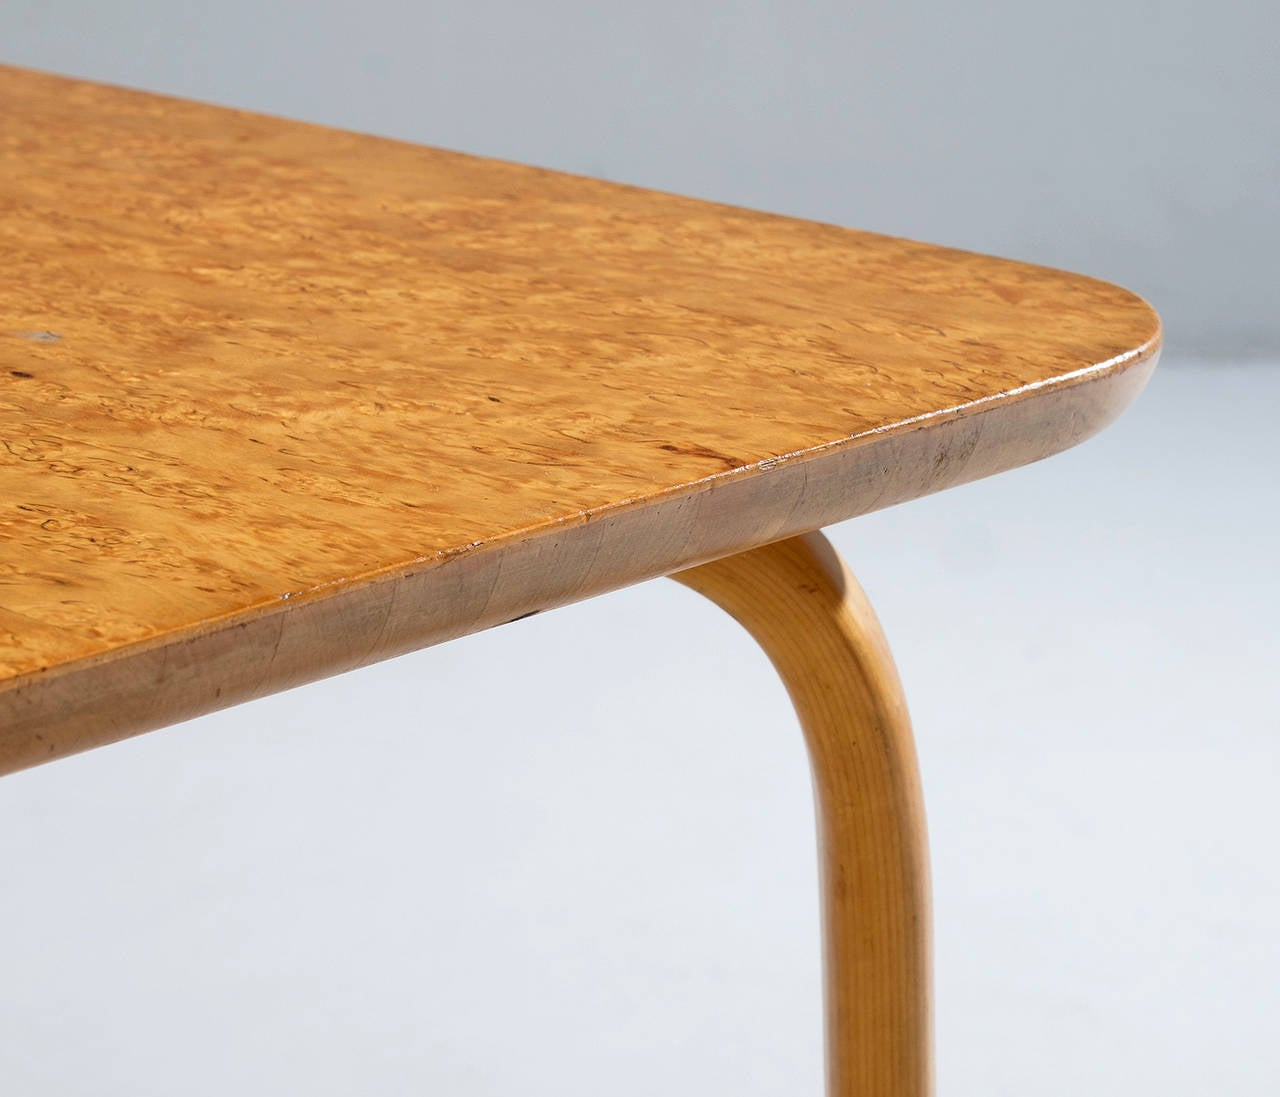 Bruno Mathsson 39 Annika 39 Coffee Table In Birch For Sale At 1stdibs